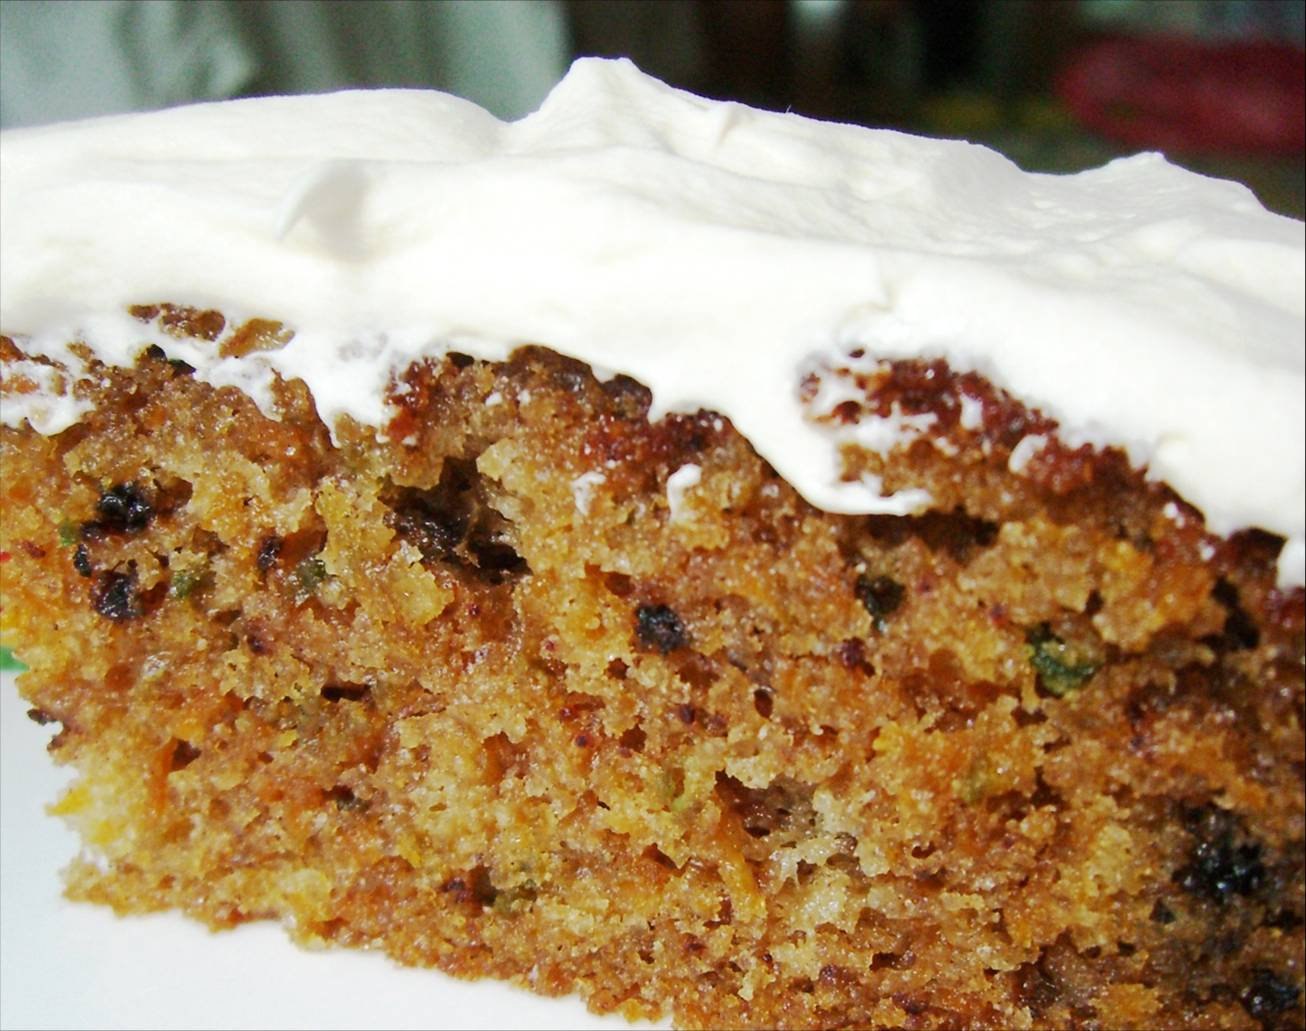 ... whole wheat carrot cake recipe yummly whole wheat carrot cake